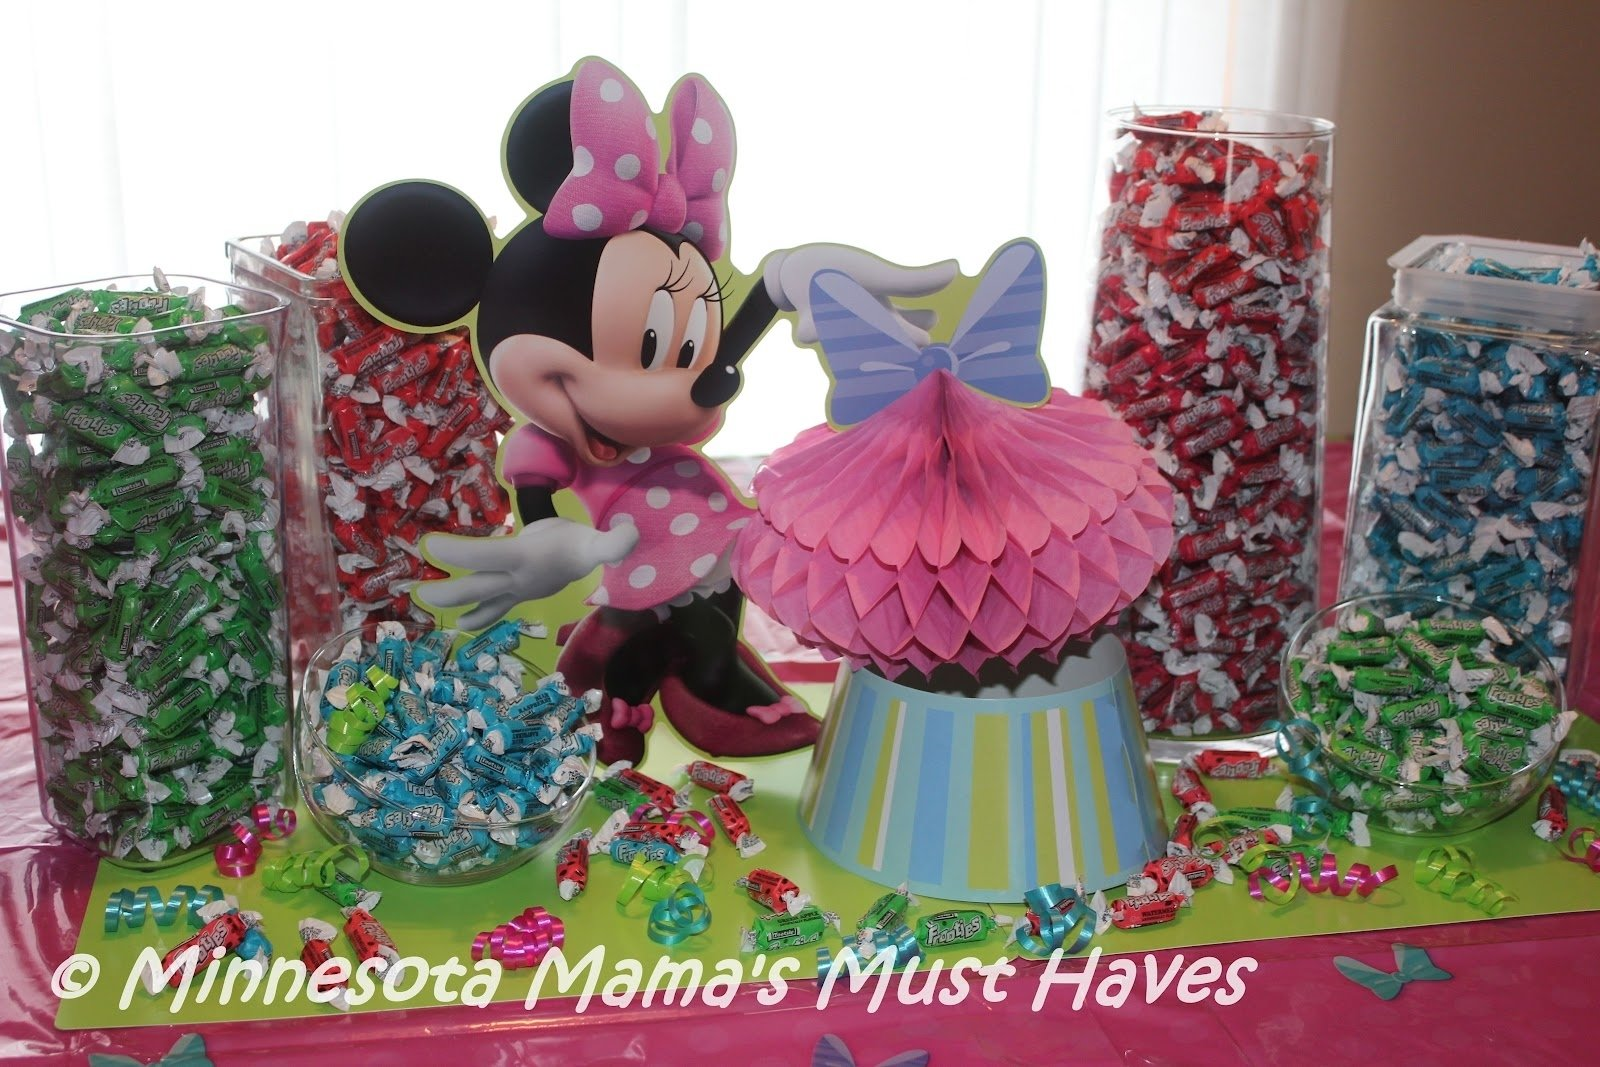 10 Elegant Minnie Mouse Birthday Party Ideas For A 2 Year Old minnie mouse birthday party danika is now a whopping 4 years old 2020